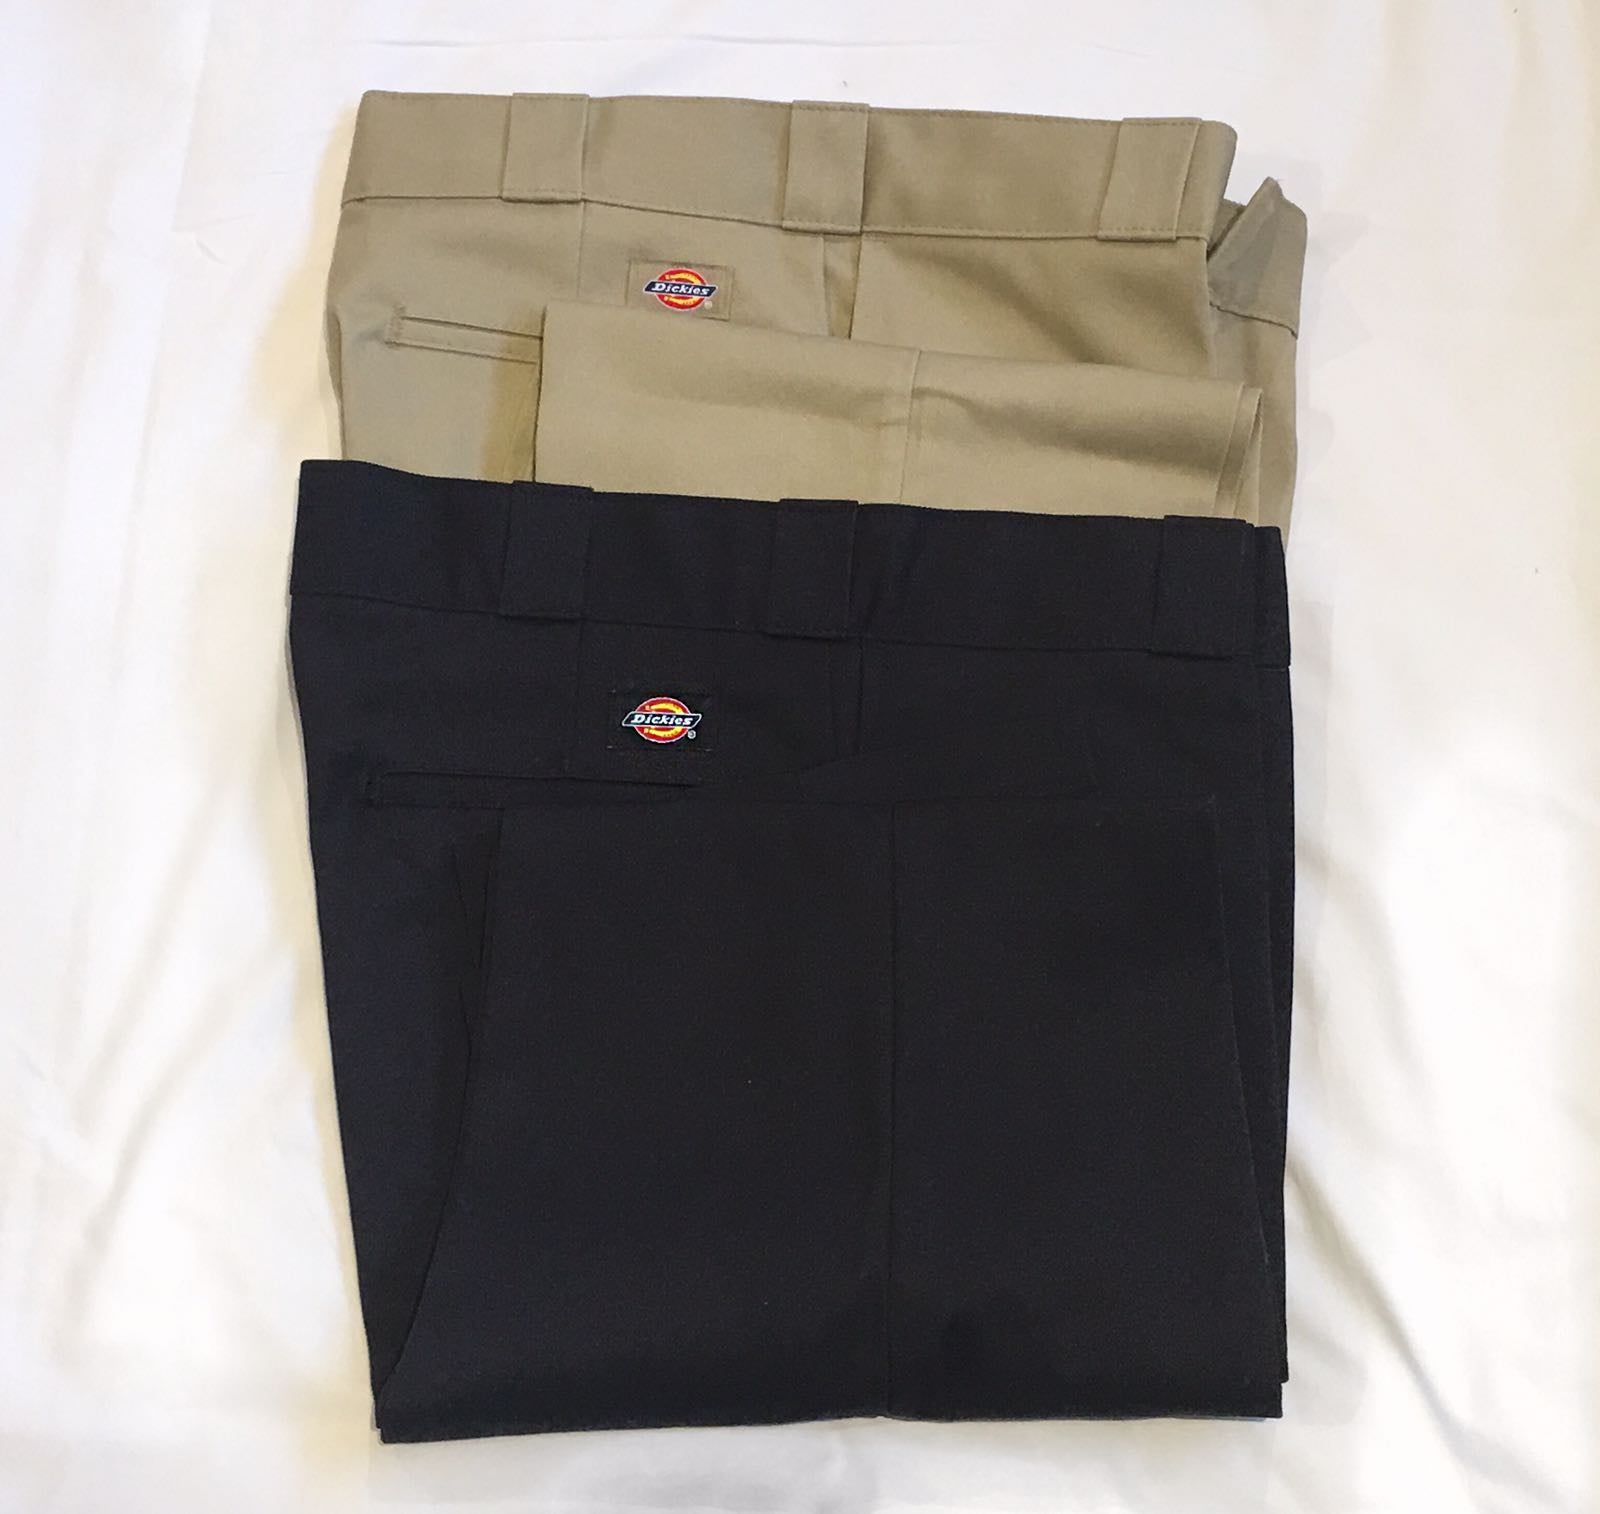 The Dickies 874 Work Pant: A Guide on How To Remain Culturally Relevant